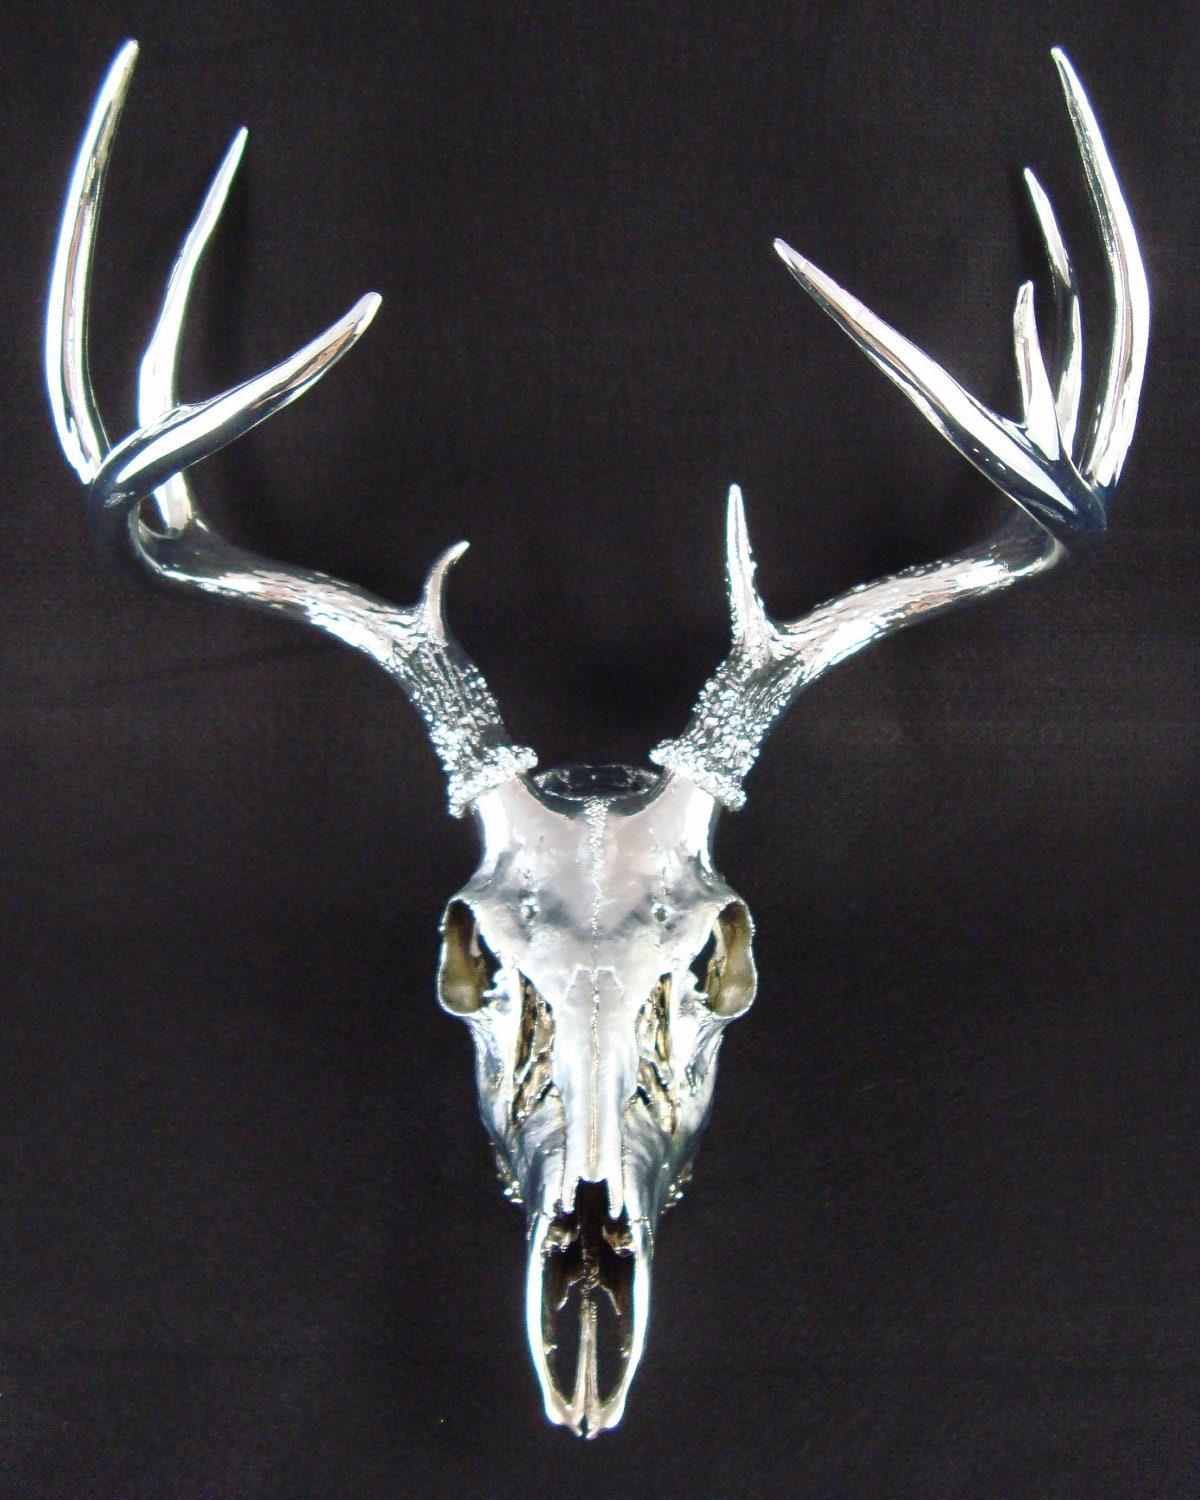 Unique Large Chrome 9 point Deer Skull Antler Art Sculpture Mule Deer European Mount